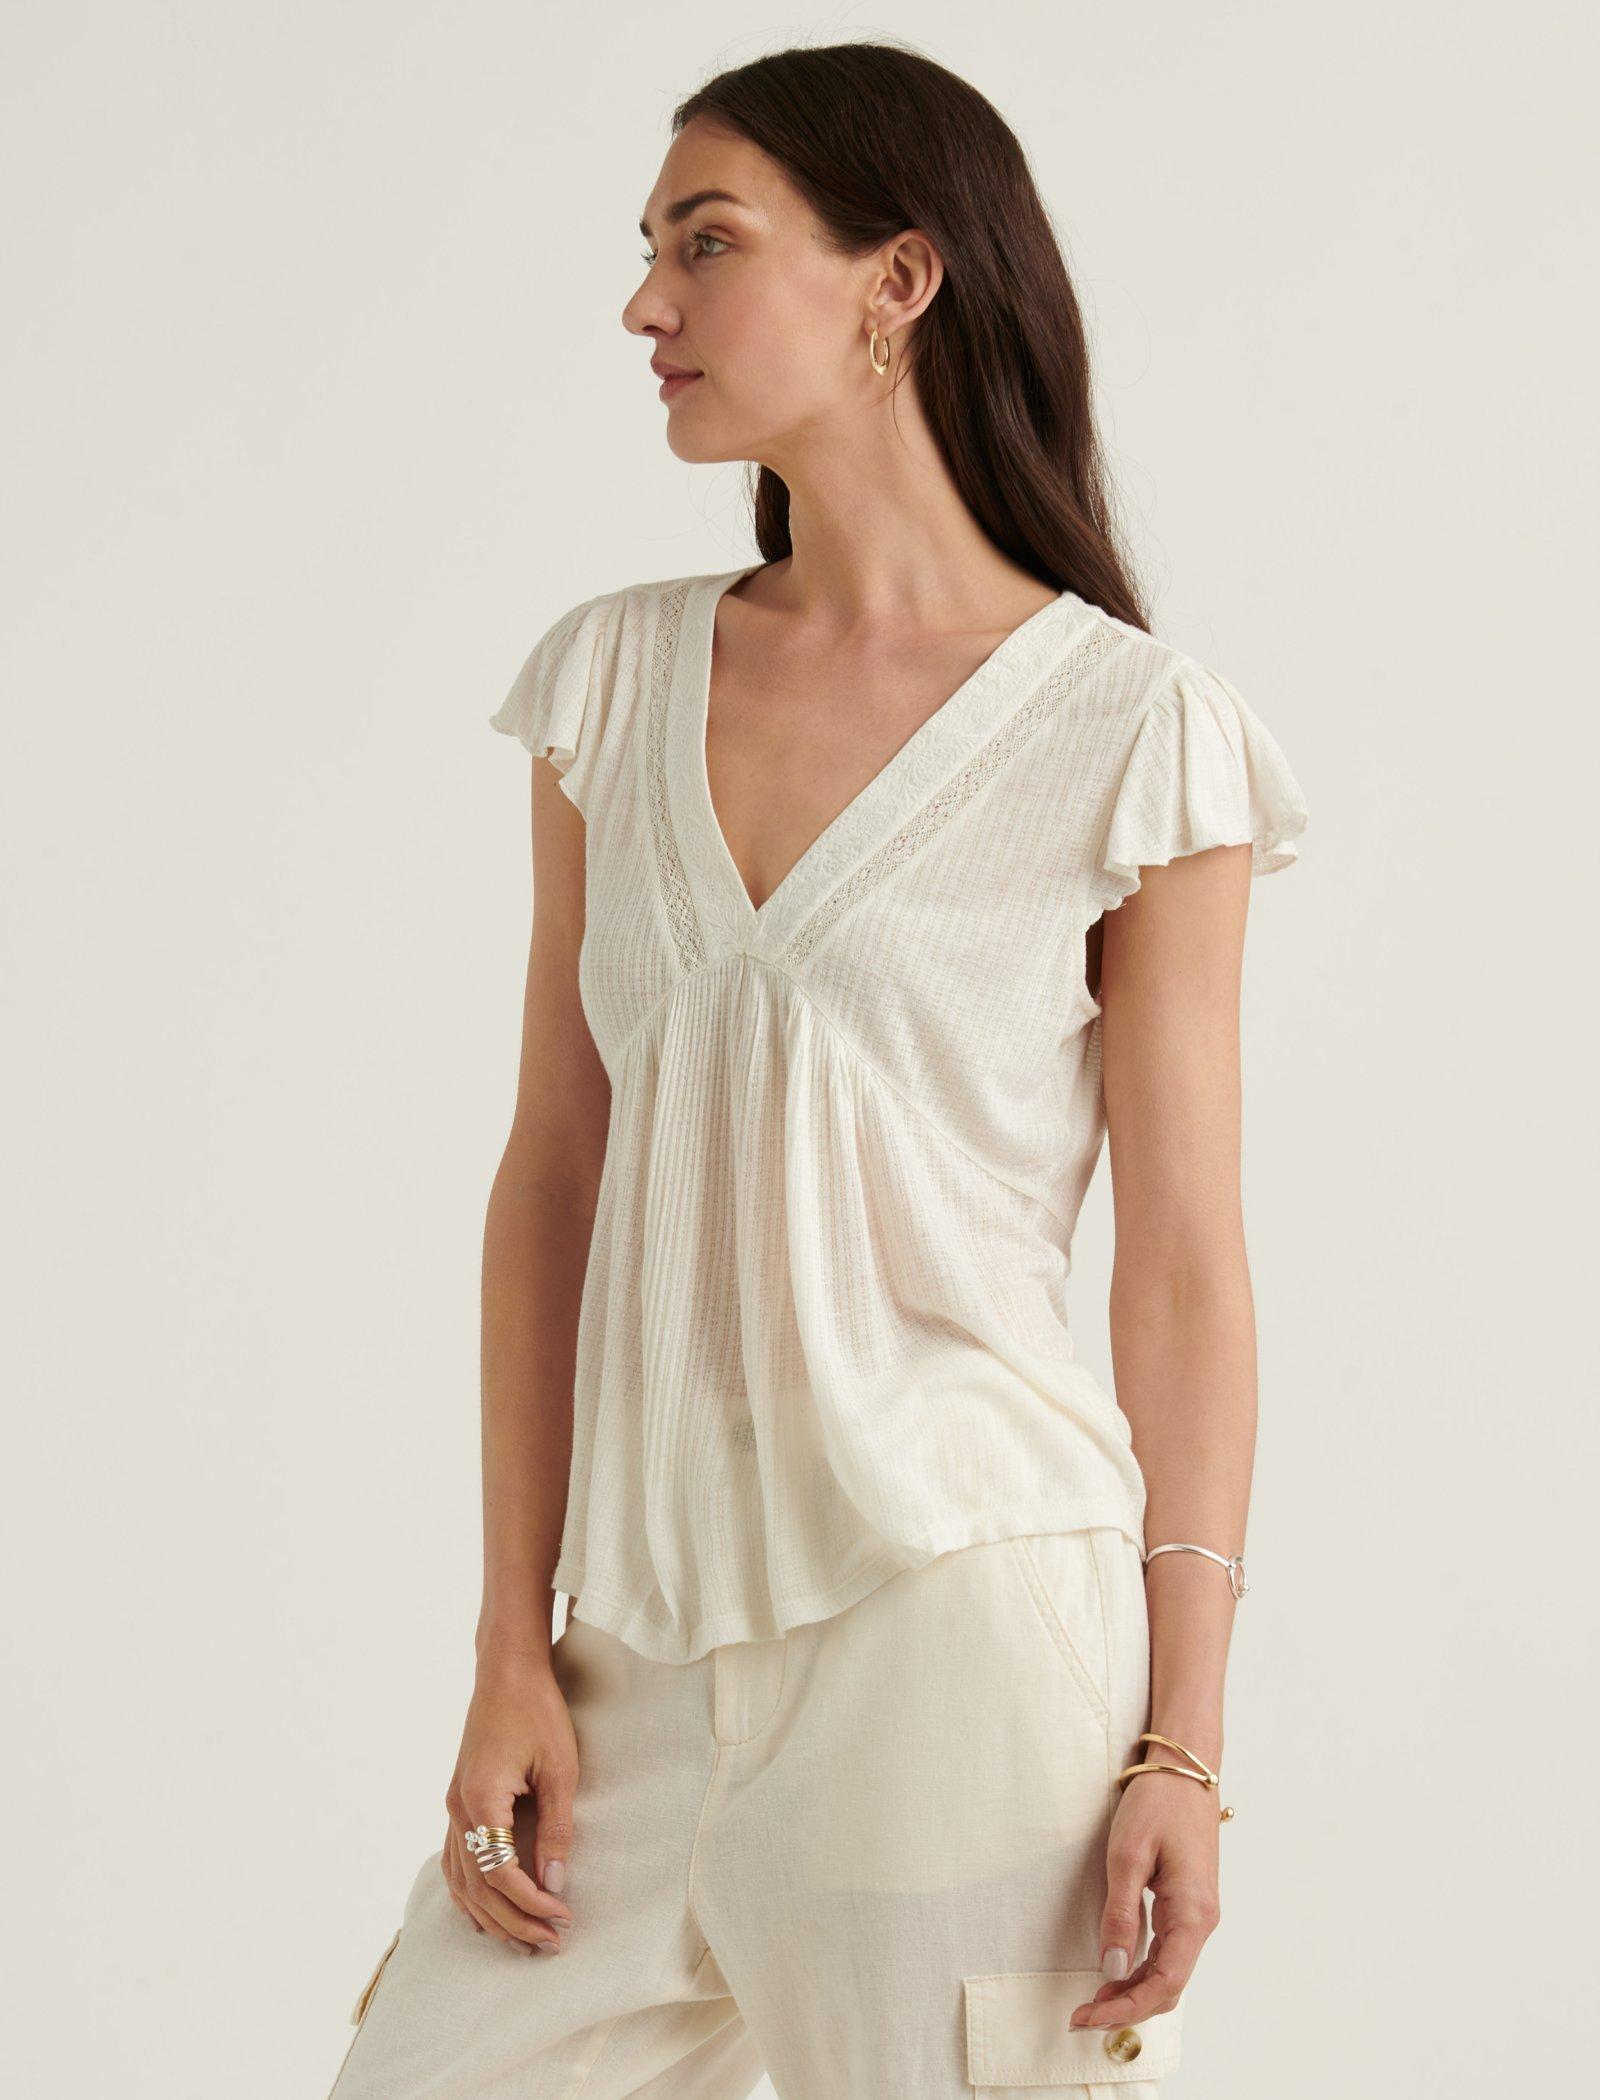 DROP NEEDLE V NECK EMBROIDERED TOP, image 1